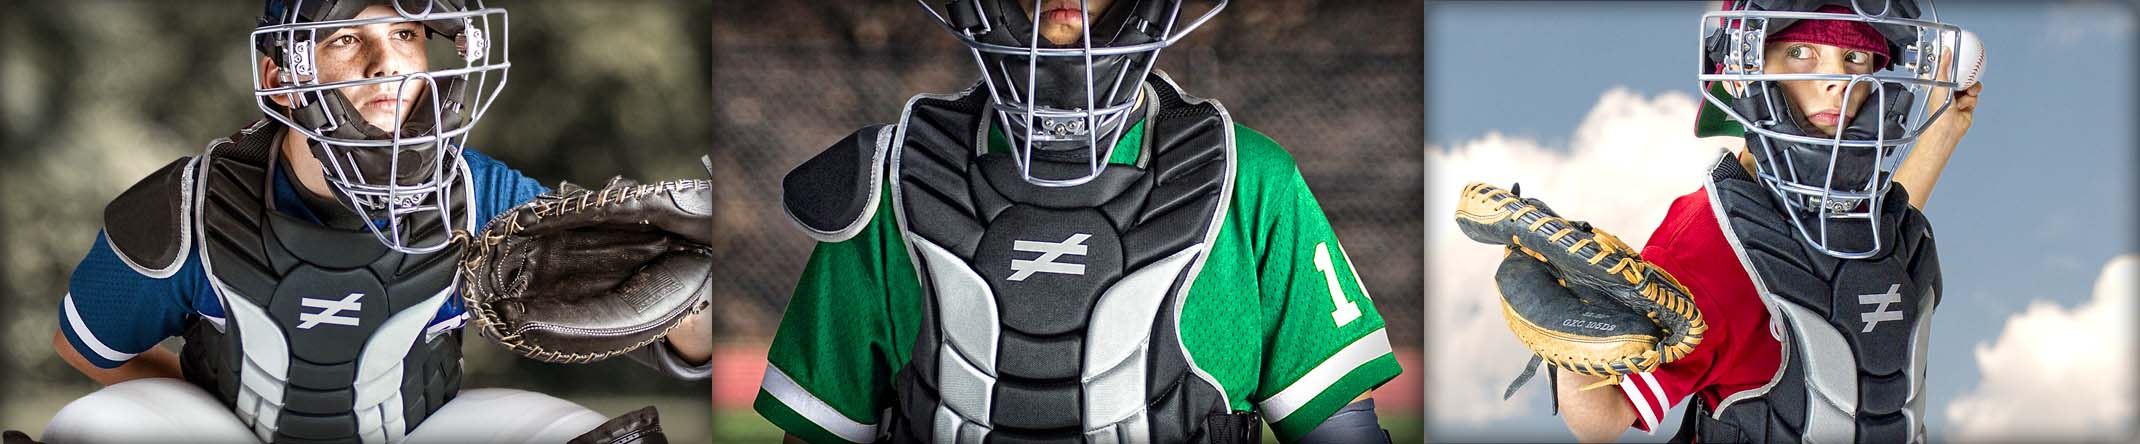 pro-athlete-protection-hart-catcher-wear